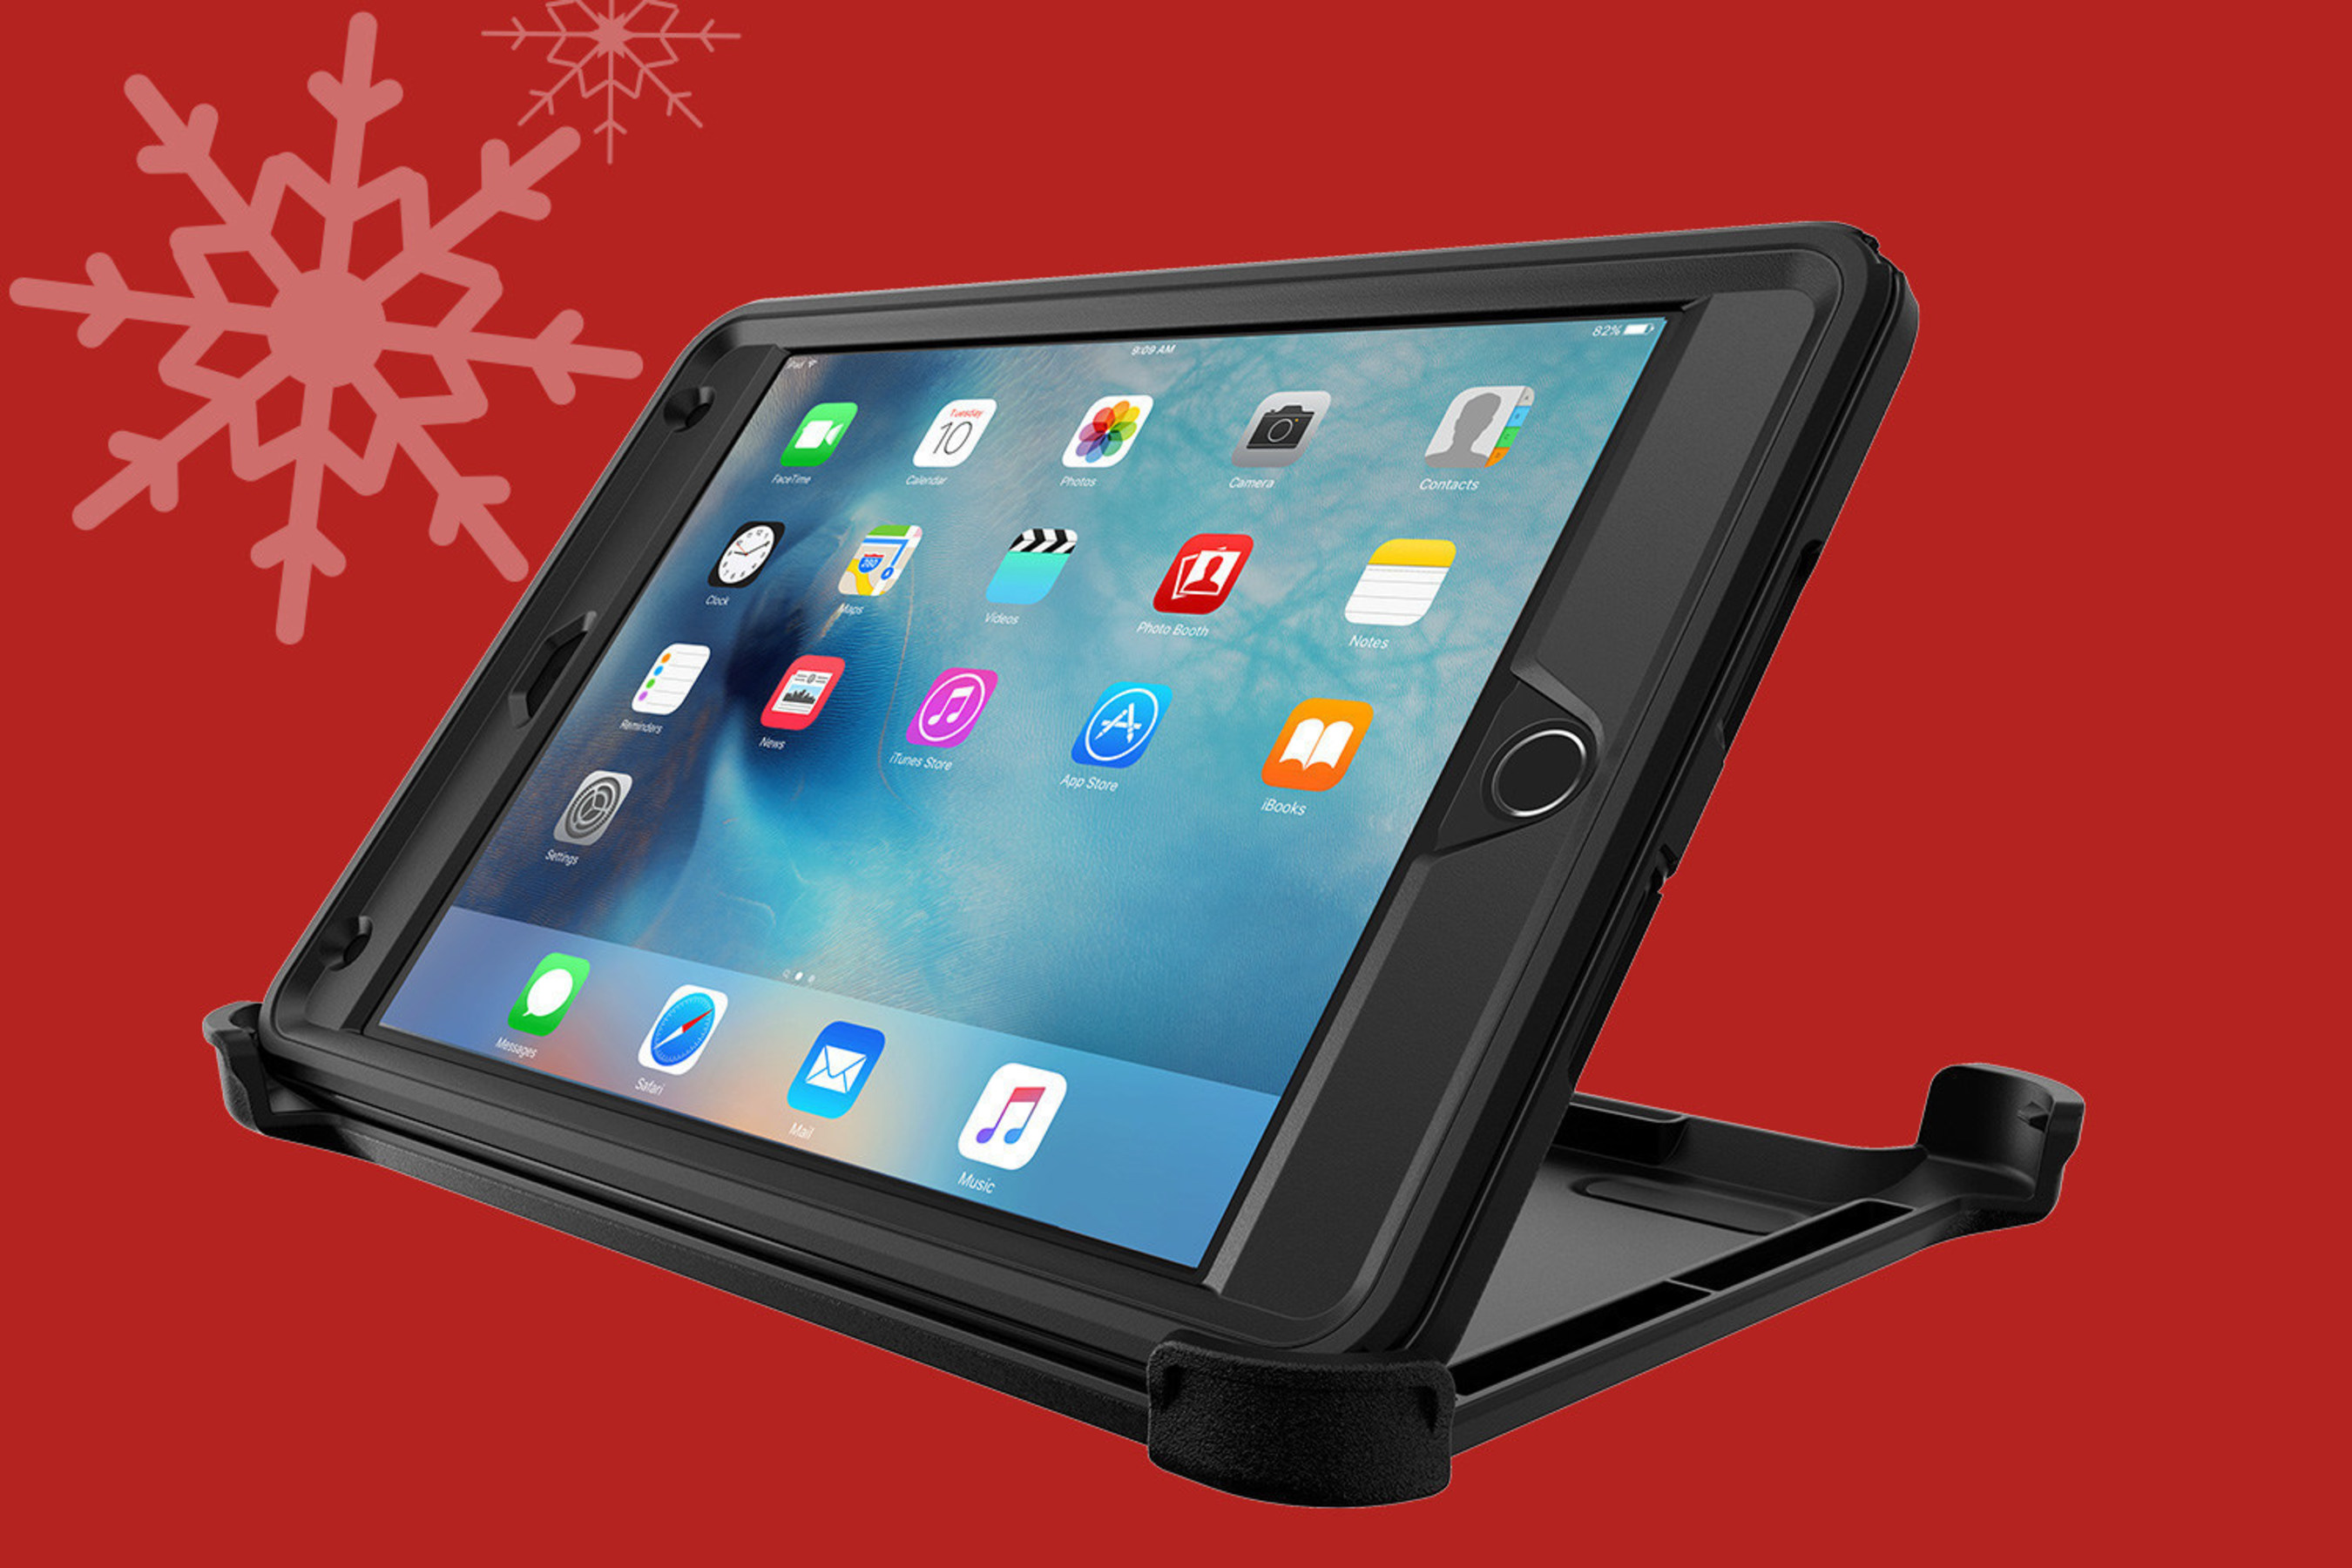 Defender Series is available for a wide variety of Apple and Samsung tablets, including the new iPad mini 4. Defender Series cases are 40% off Black Friday through Cyber Monday.